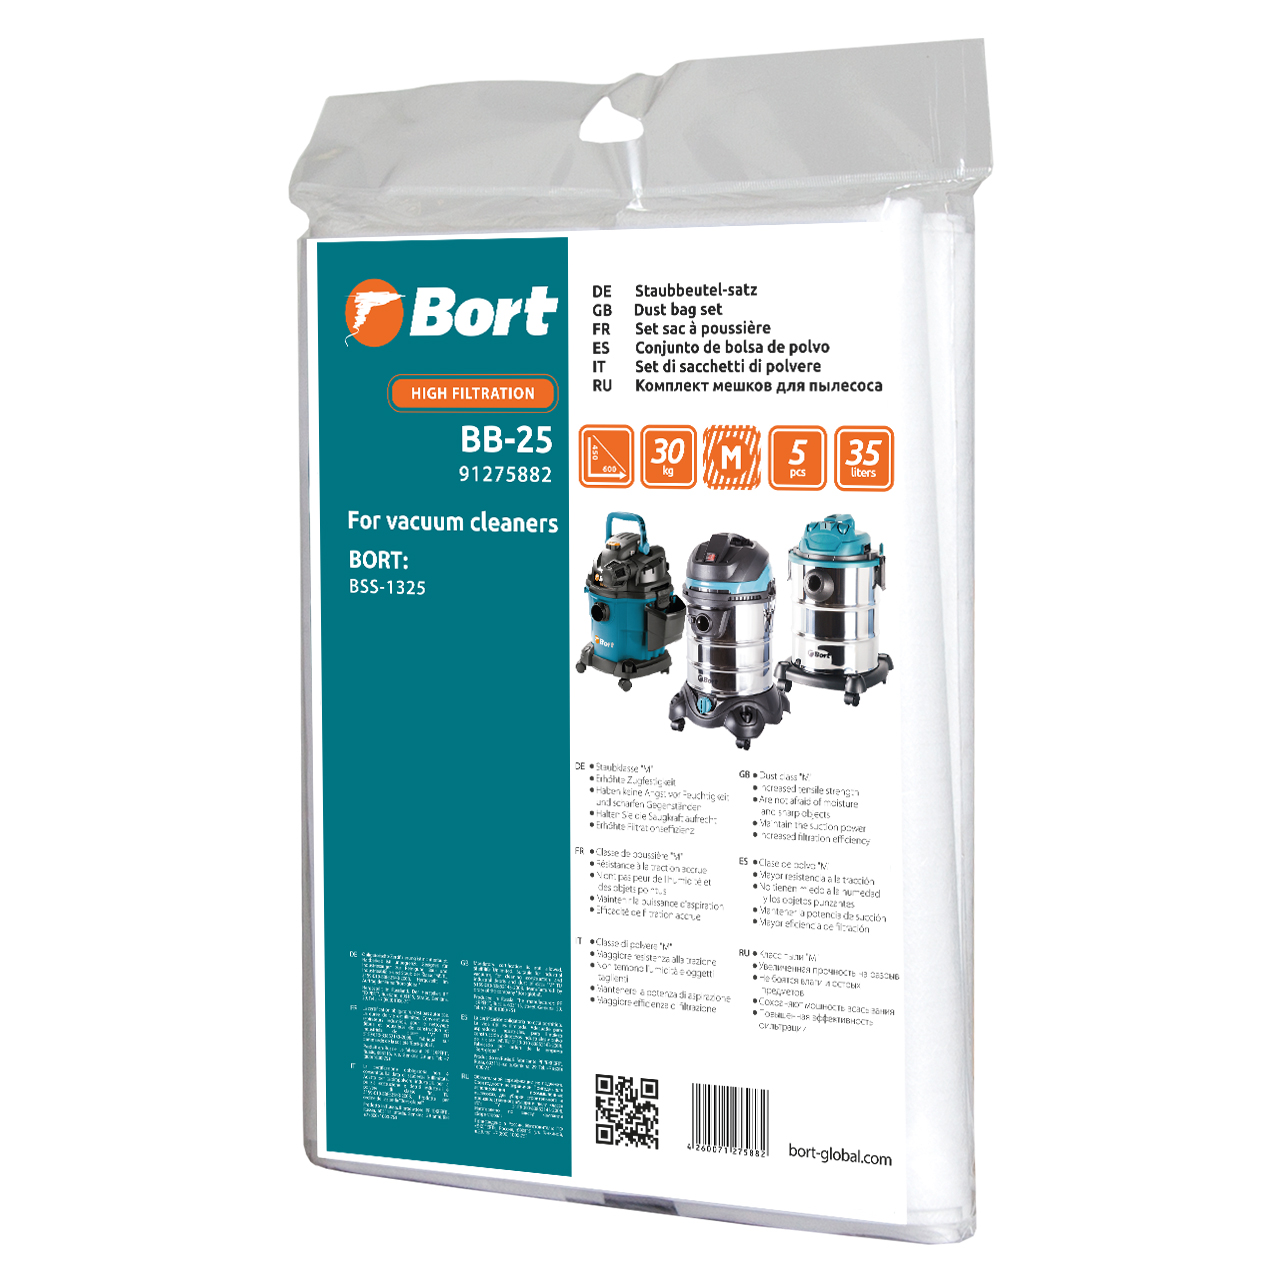 Bags set dust collection for vacuum Cleaner bort BB-25 (volume 35, 5 pcs, BSS-1325) стоимость